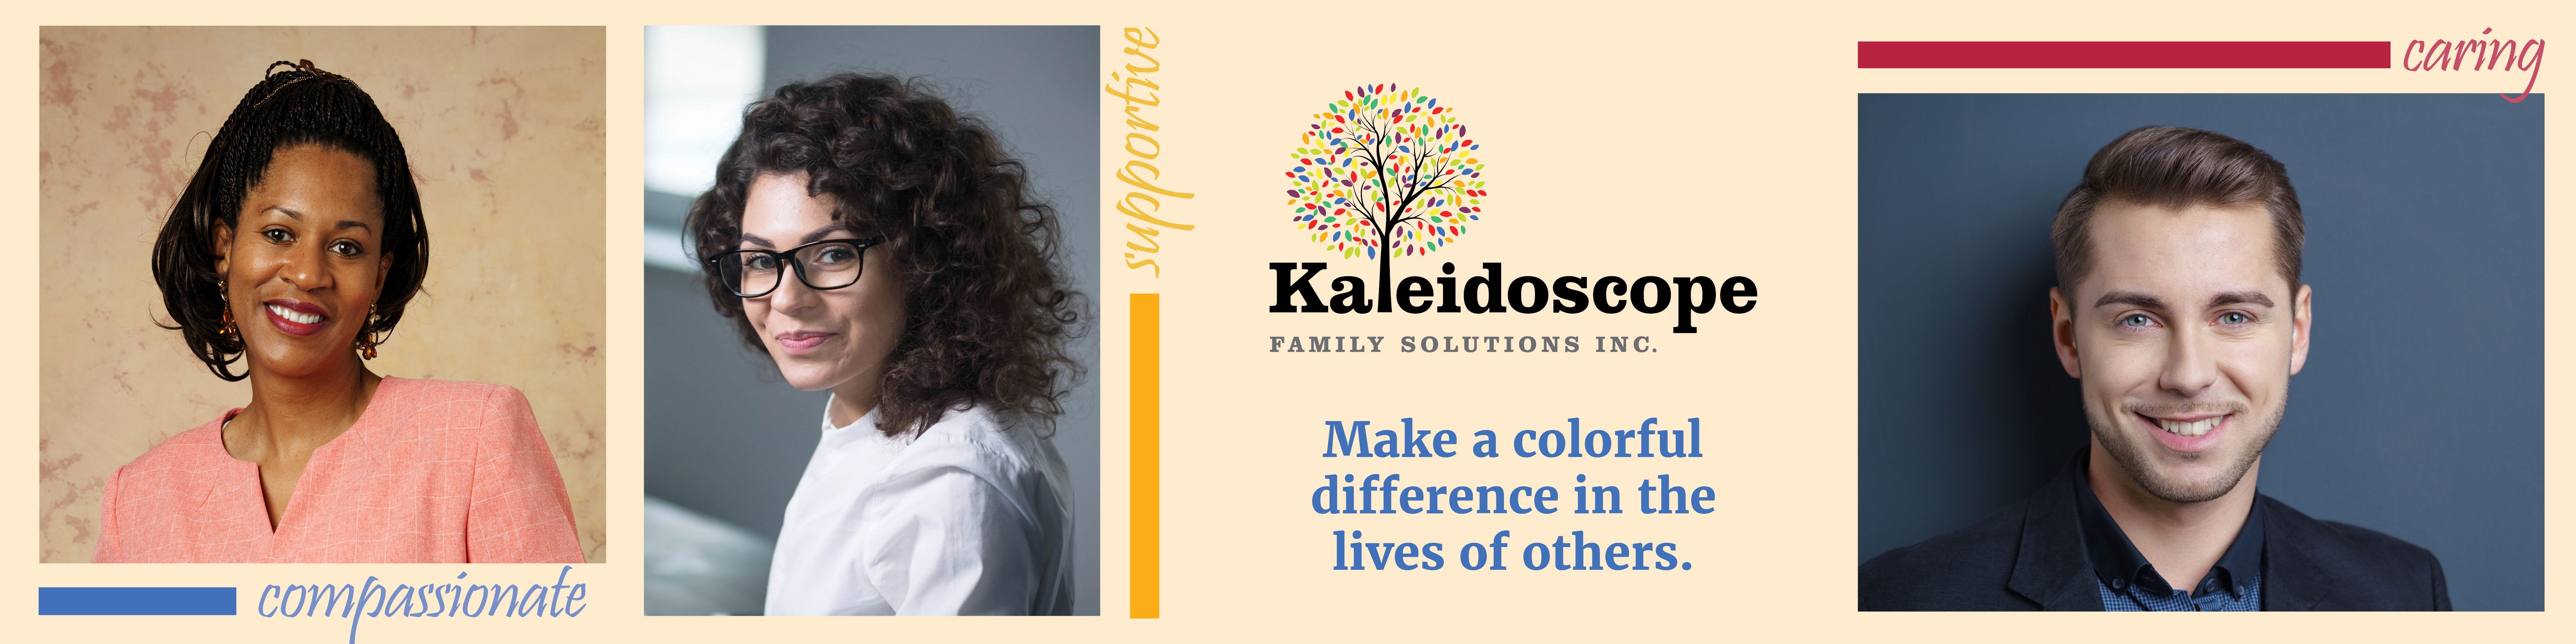 Kaleidoscope Family Solutions Inc - Therapeutic Support Professional banner image